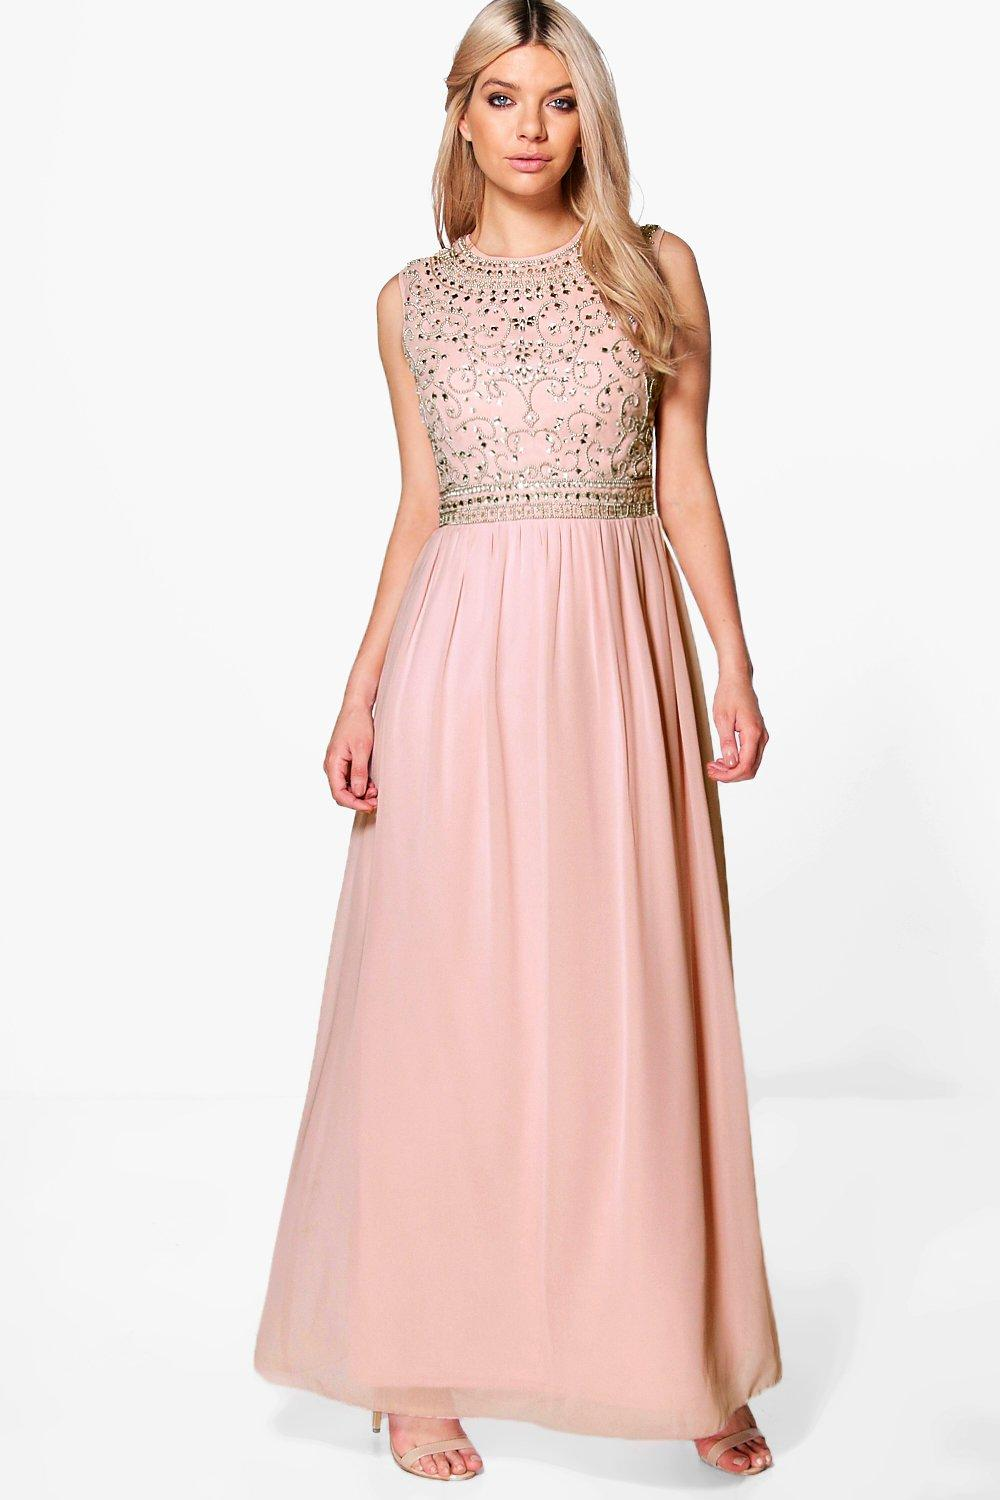 Boutique Isla Embellished Chiffon Maxi Dress | Boohoo